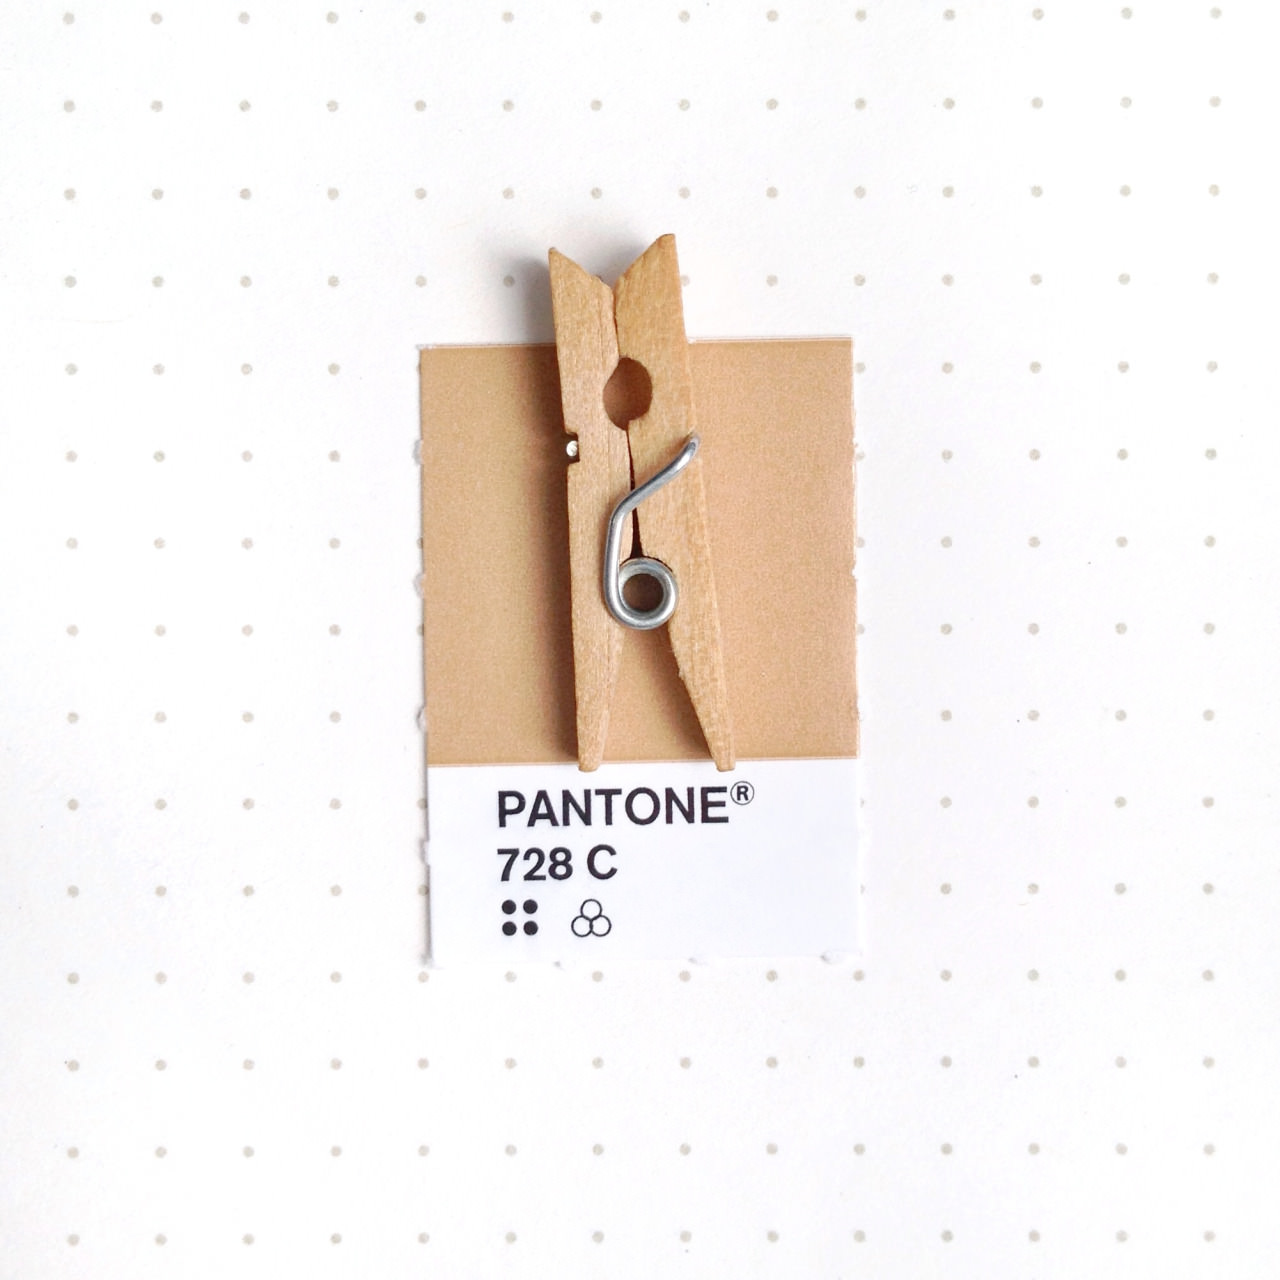 bridging-life-and-design-in-15-pantone-color-matches-12